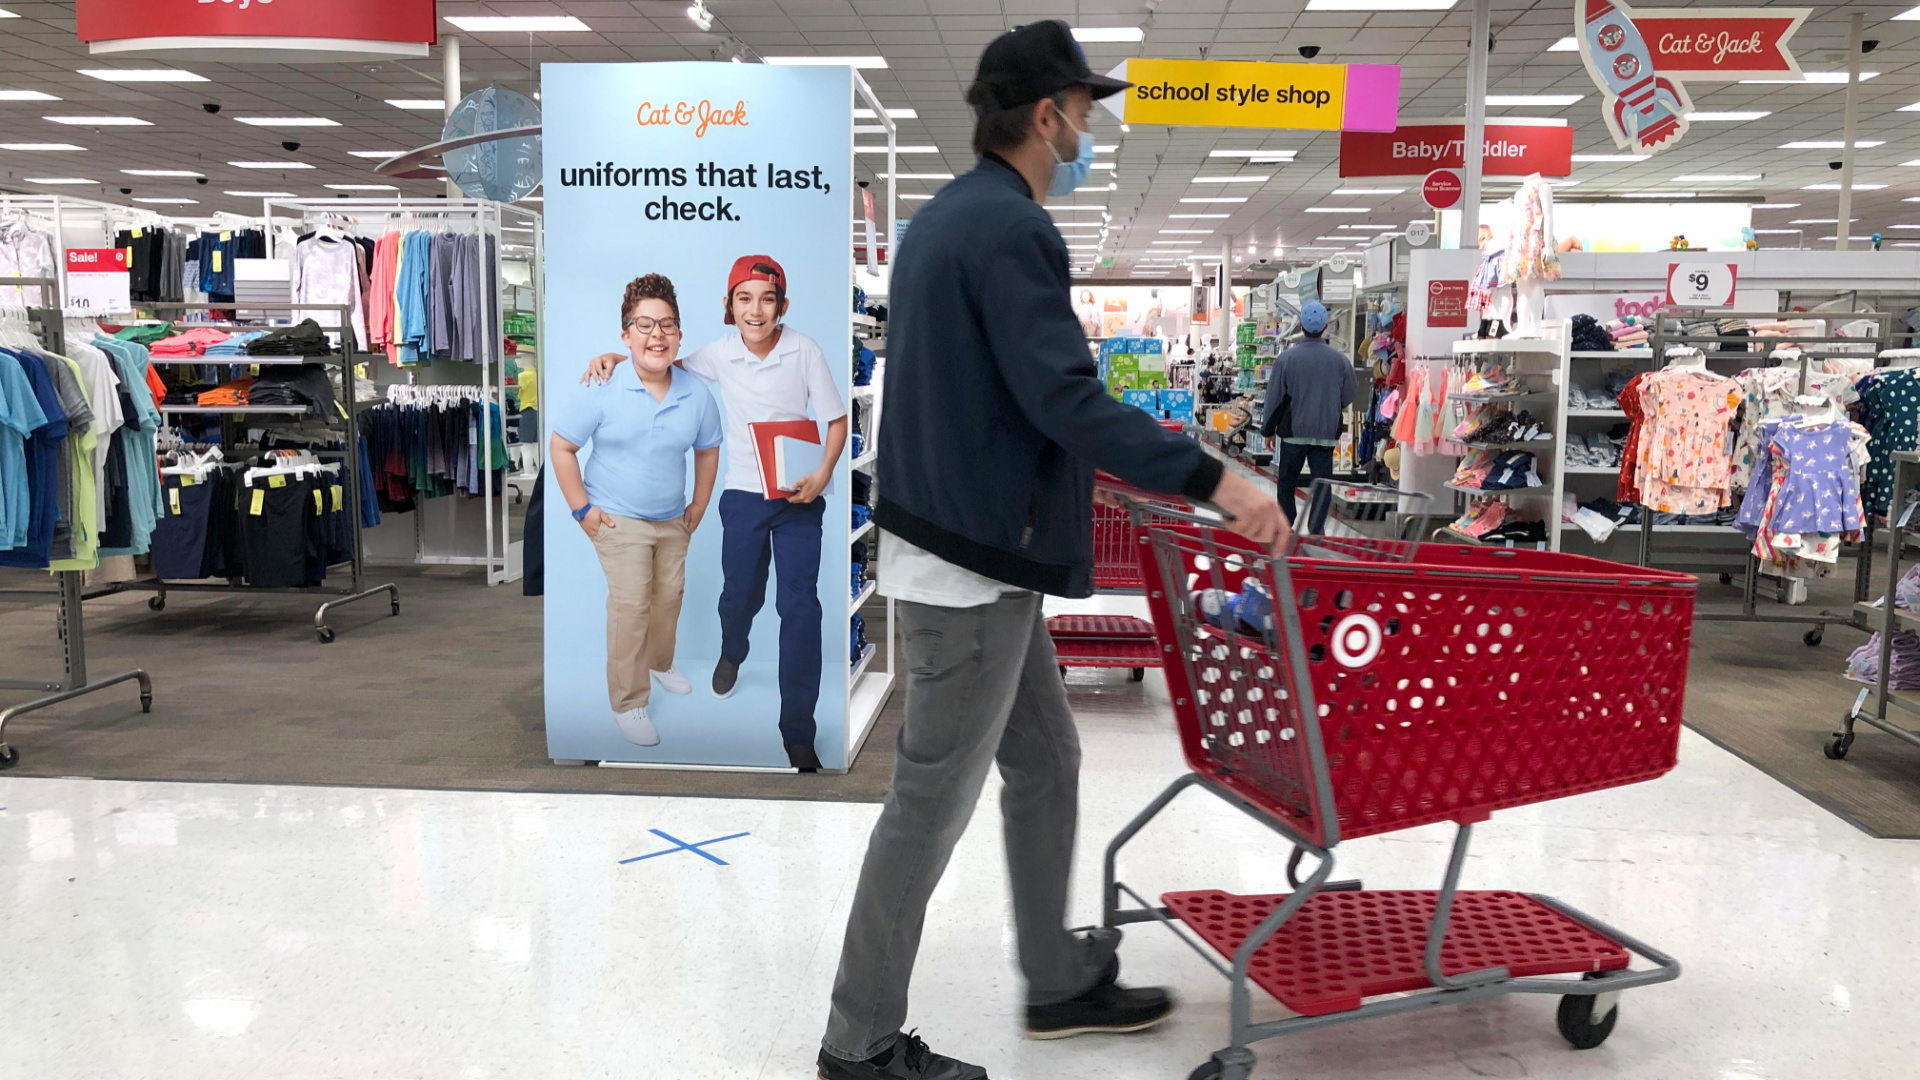 An advertisement for back-to-school uniforms is displayed at a Target store on August 3, 2020, in Colma, California. (Justin Sullivan/Getty Images)